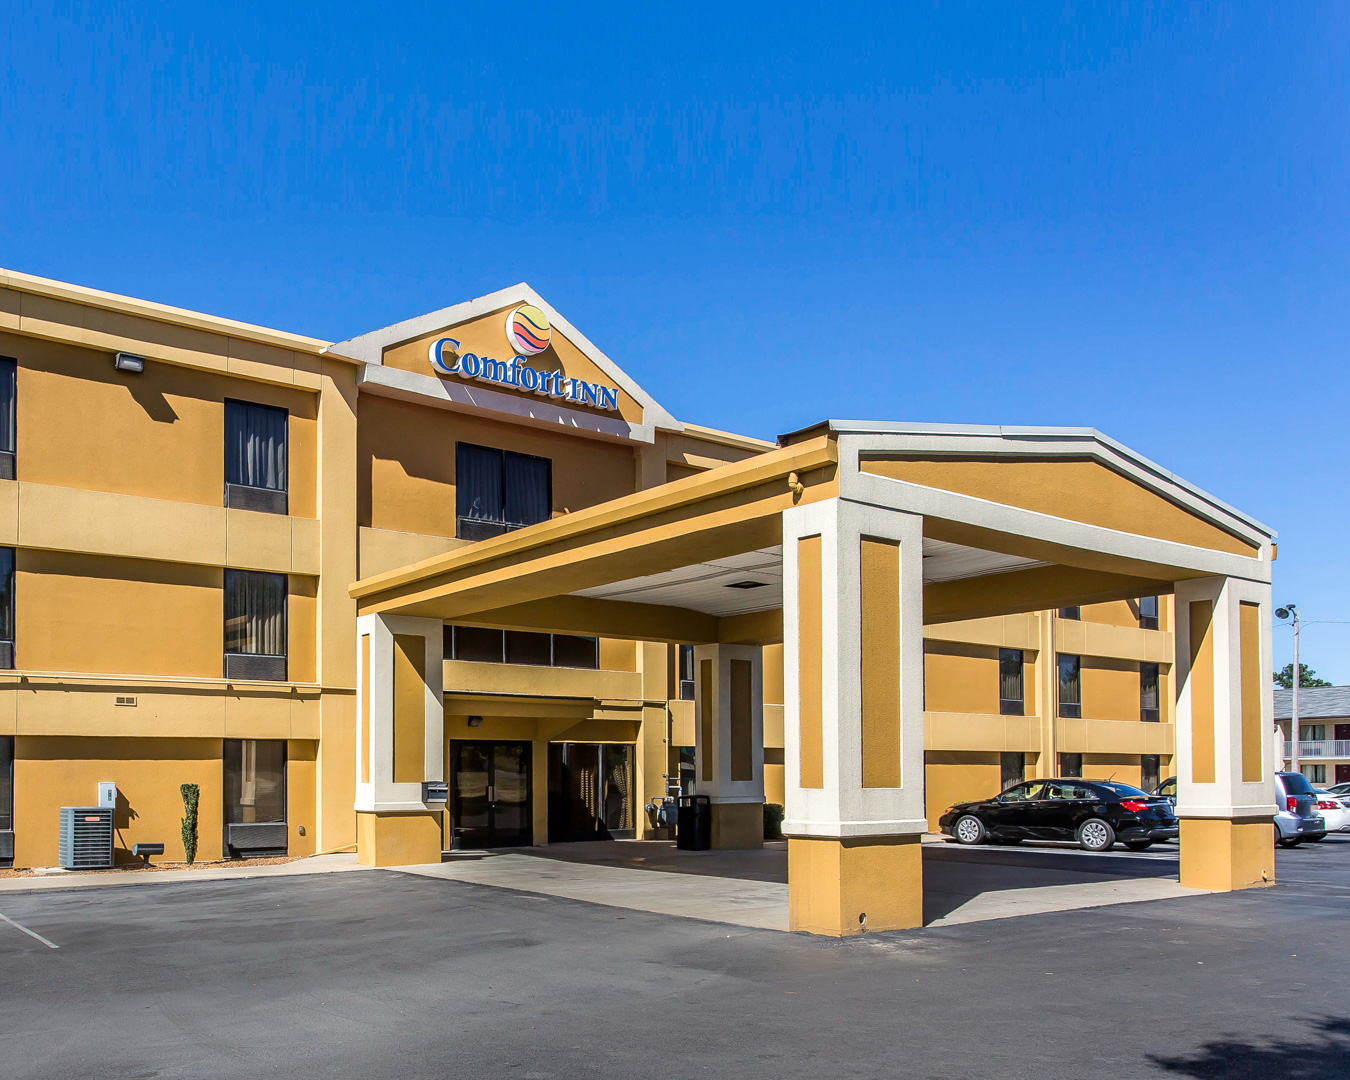 Hotels In Paducah Ky Near I